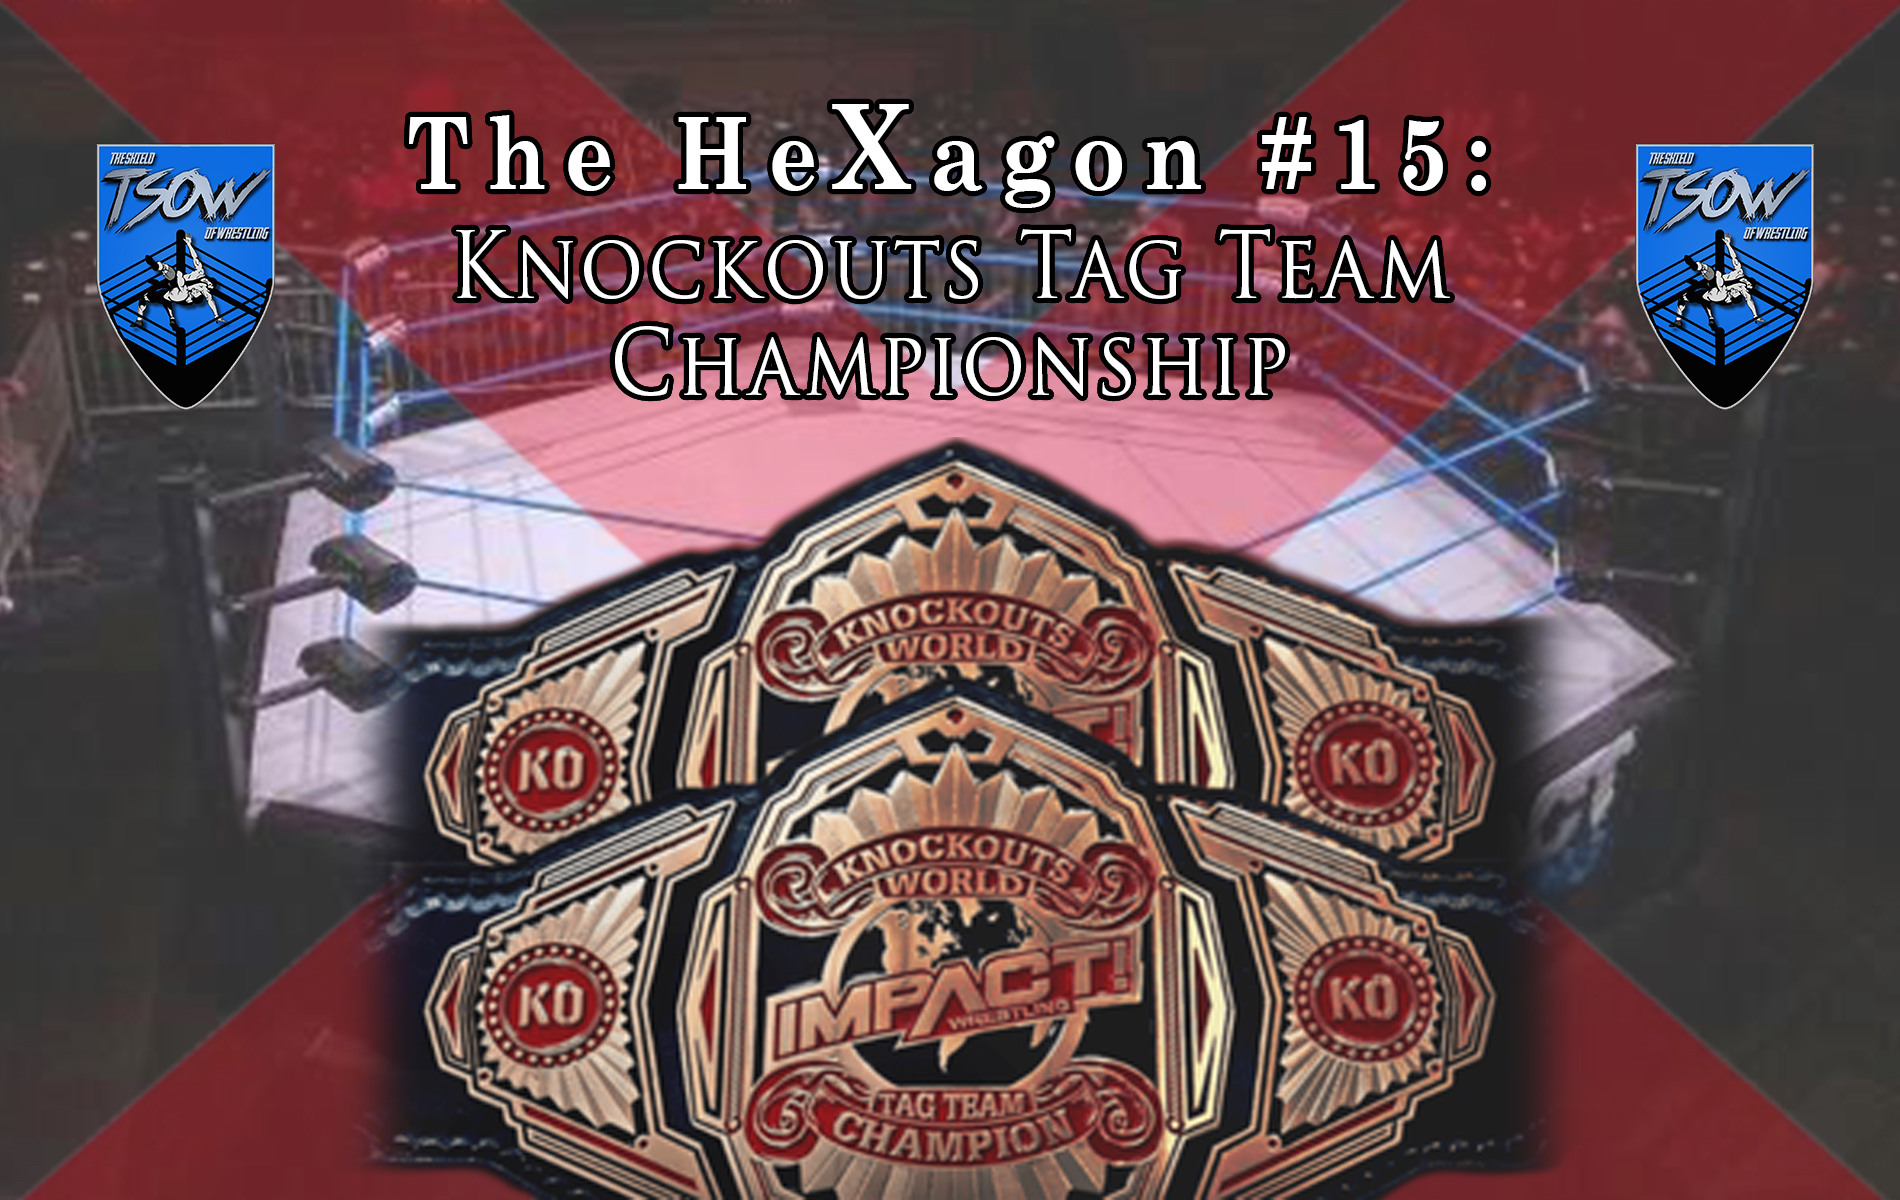 The HeXagon #15: Knockouts Tag Team Championship